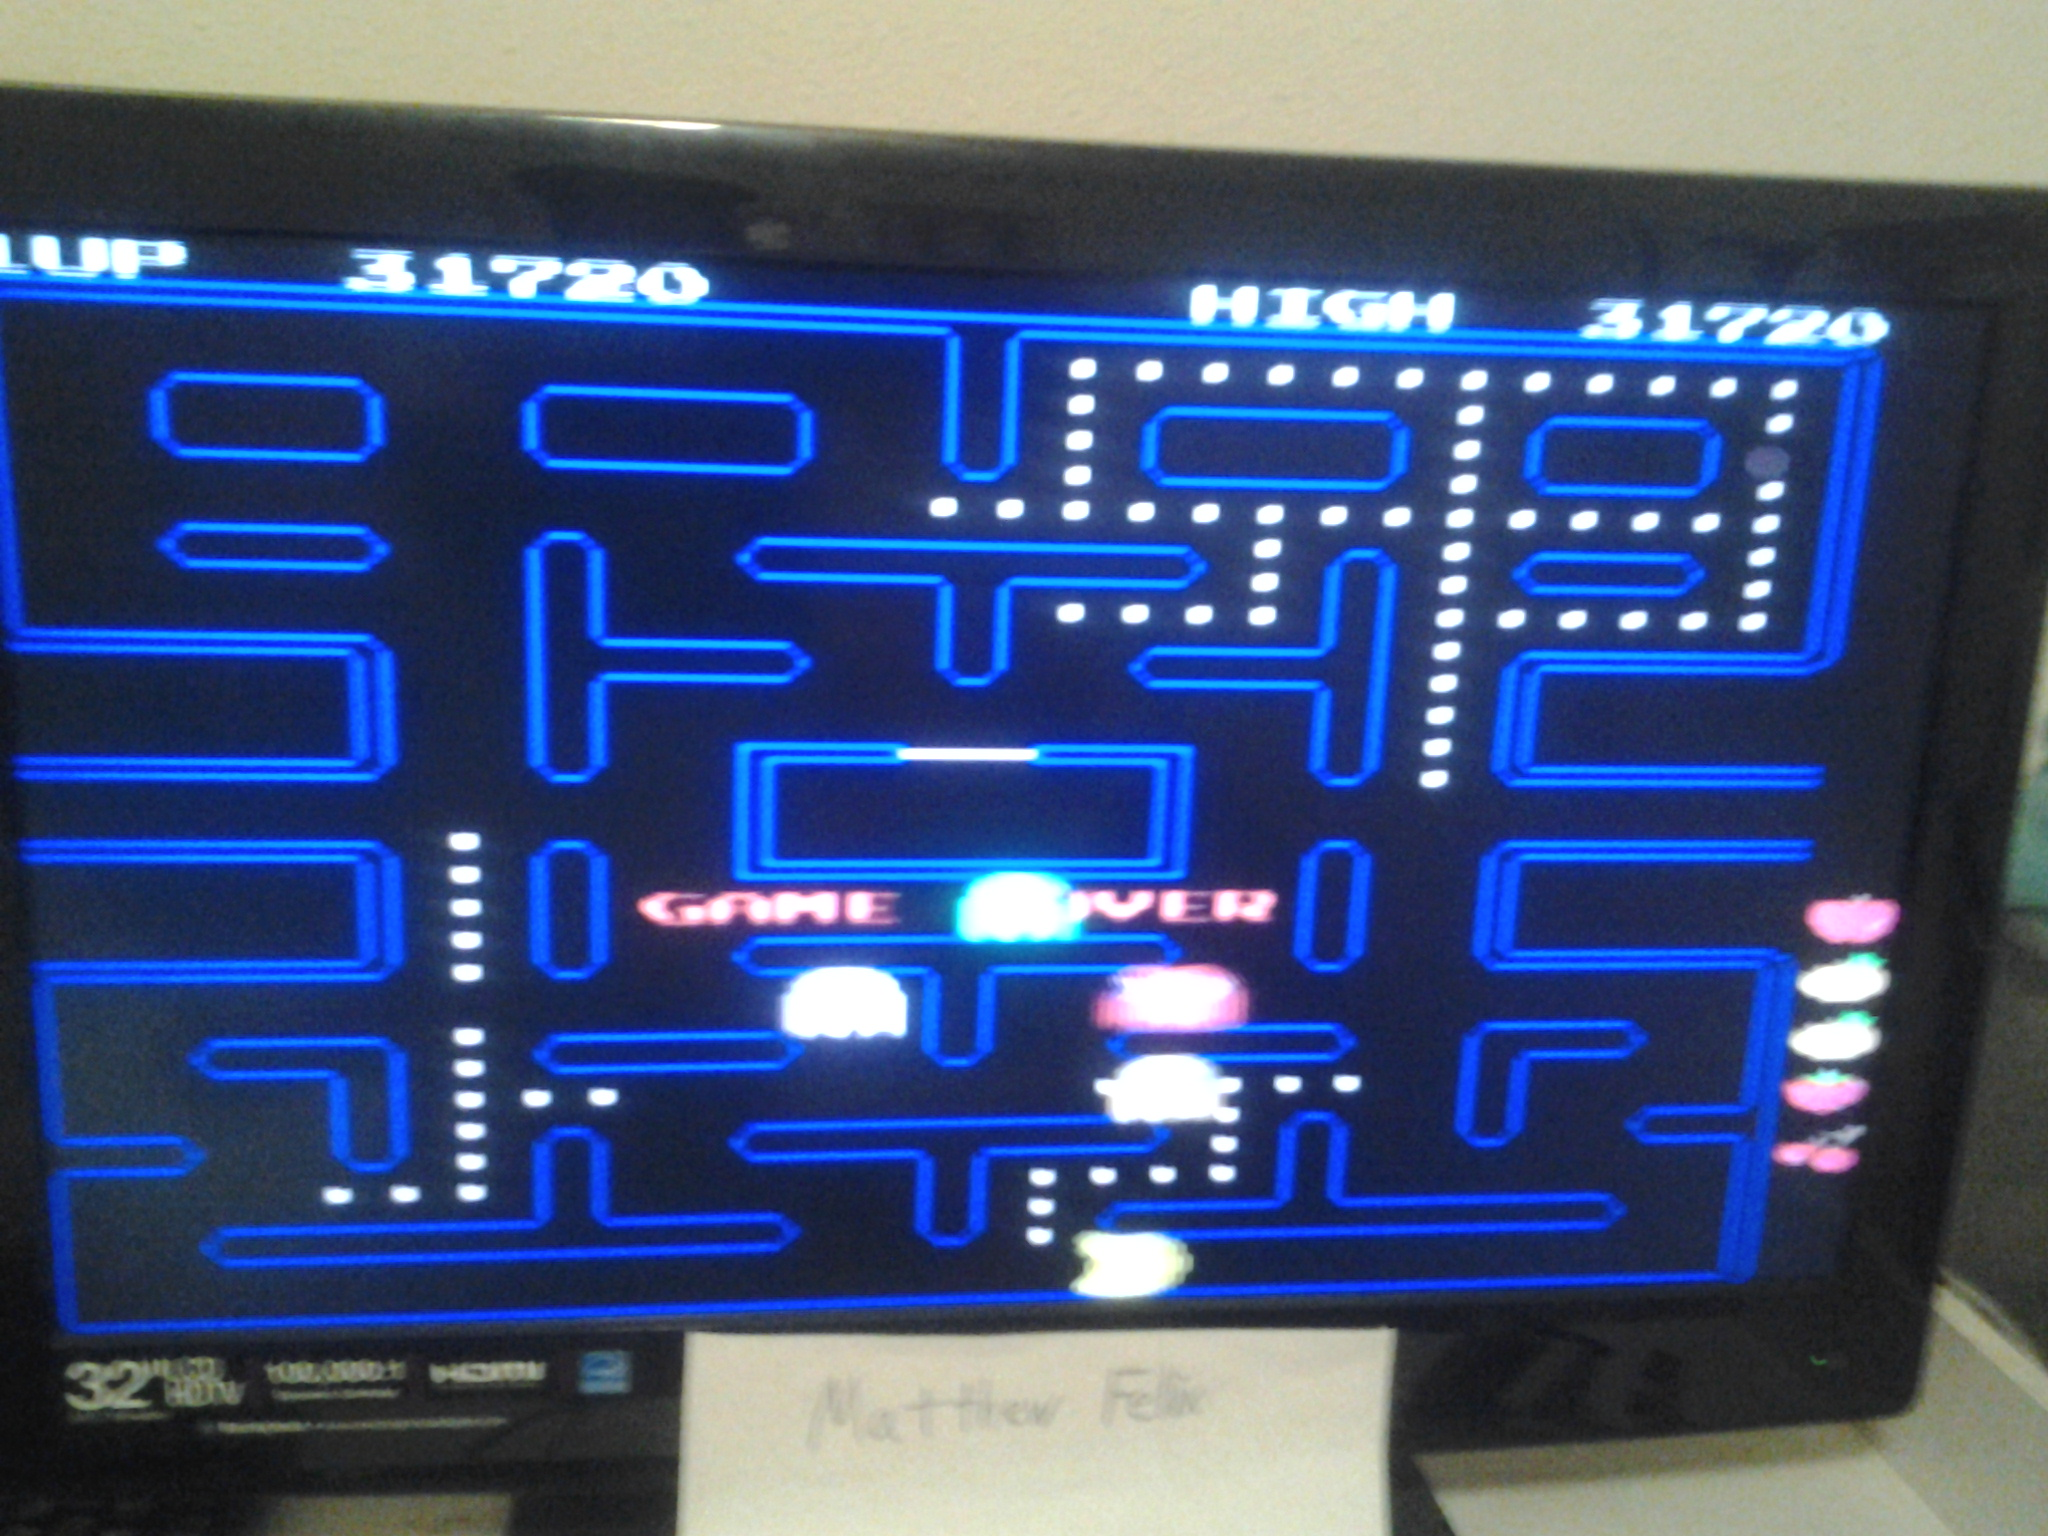 Namco Museum 50th Anniversary: Pac-Man 31,720 points